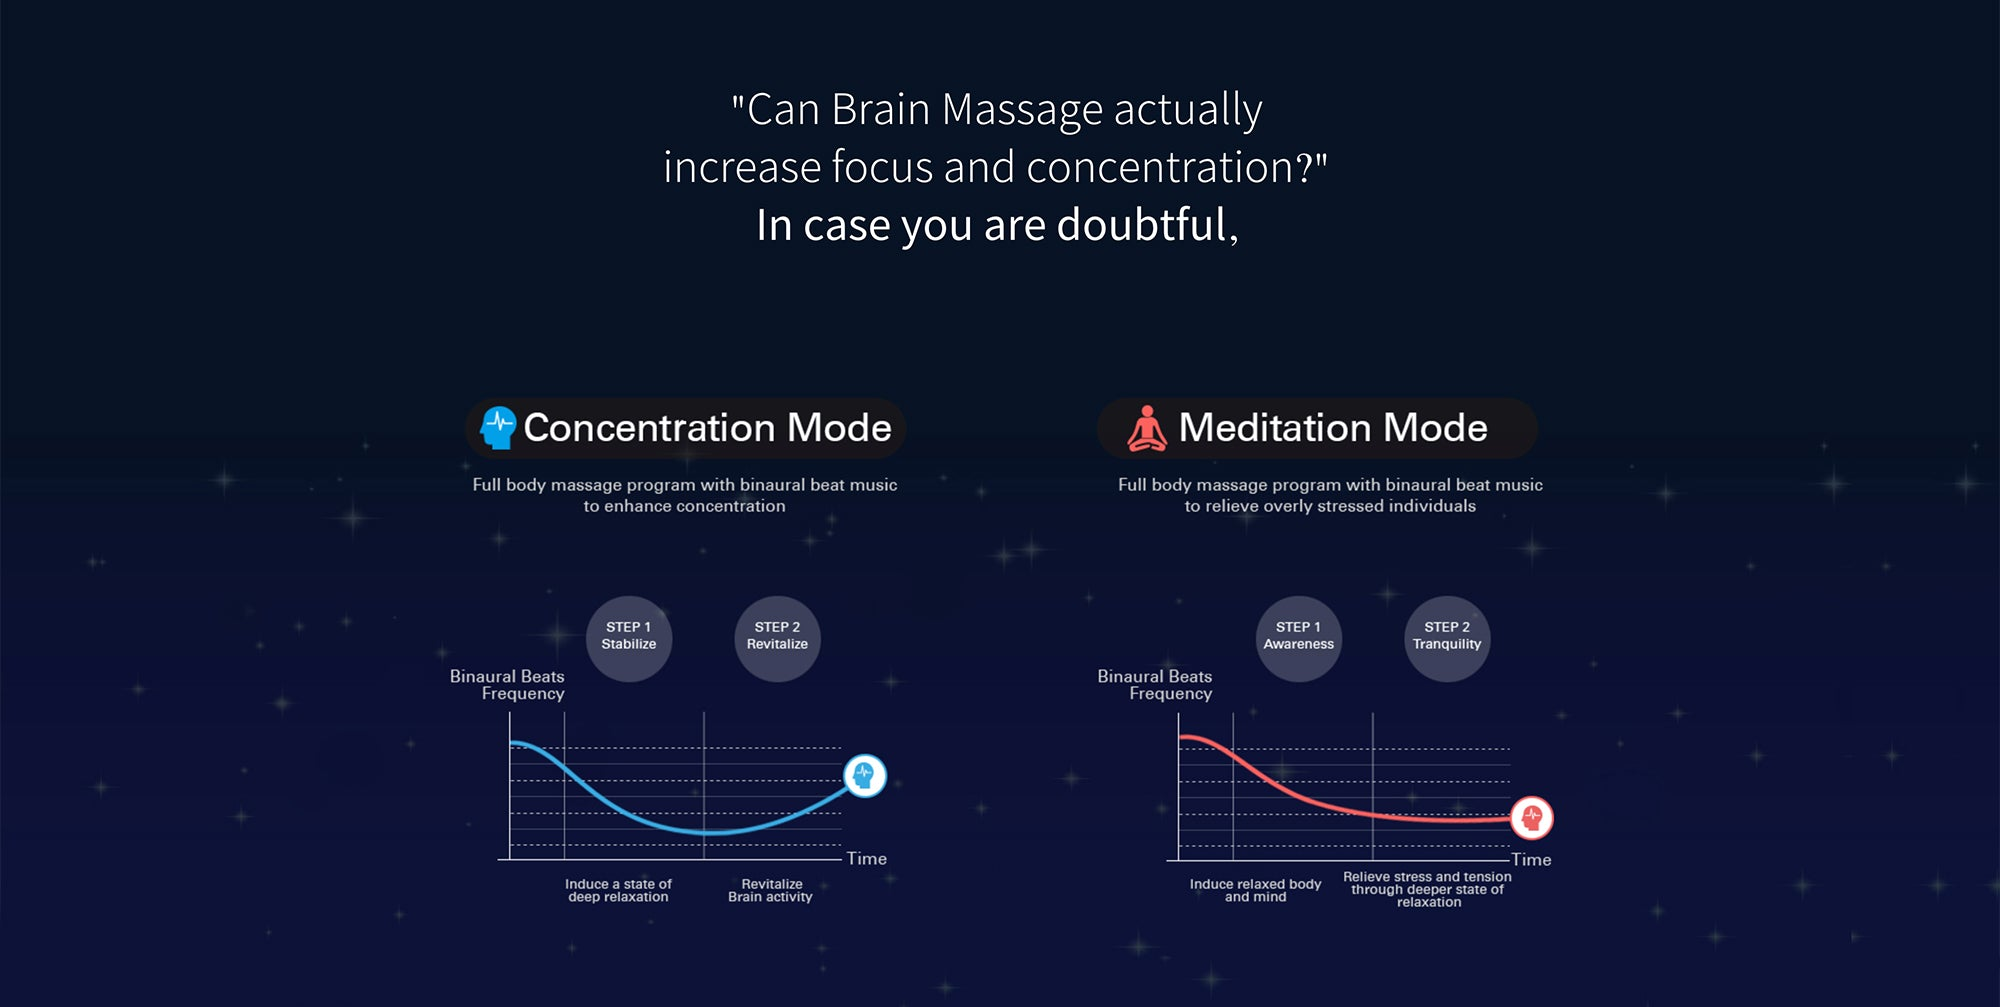 Concentration Mode And Mediation Mode For The Brain Massage